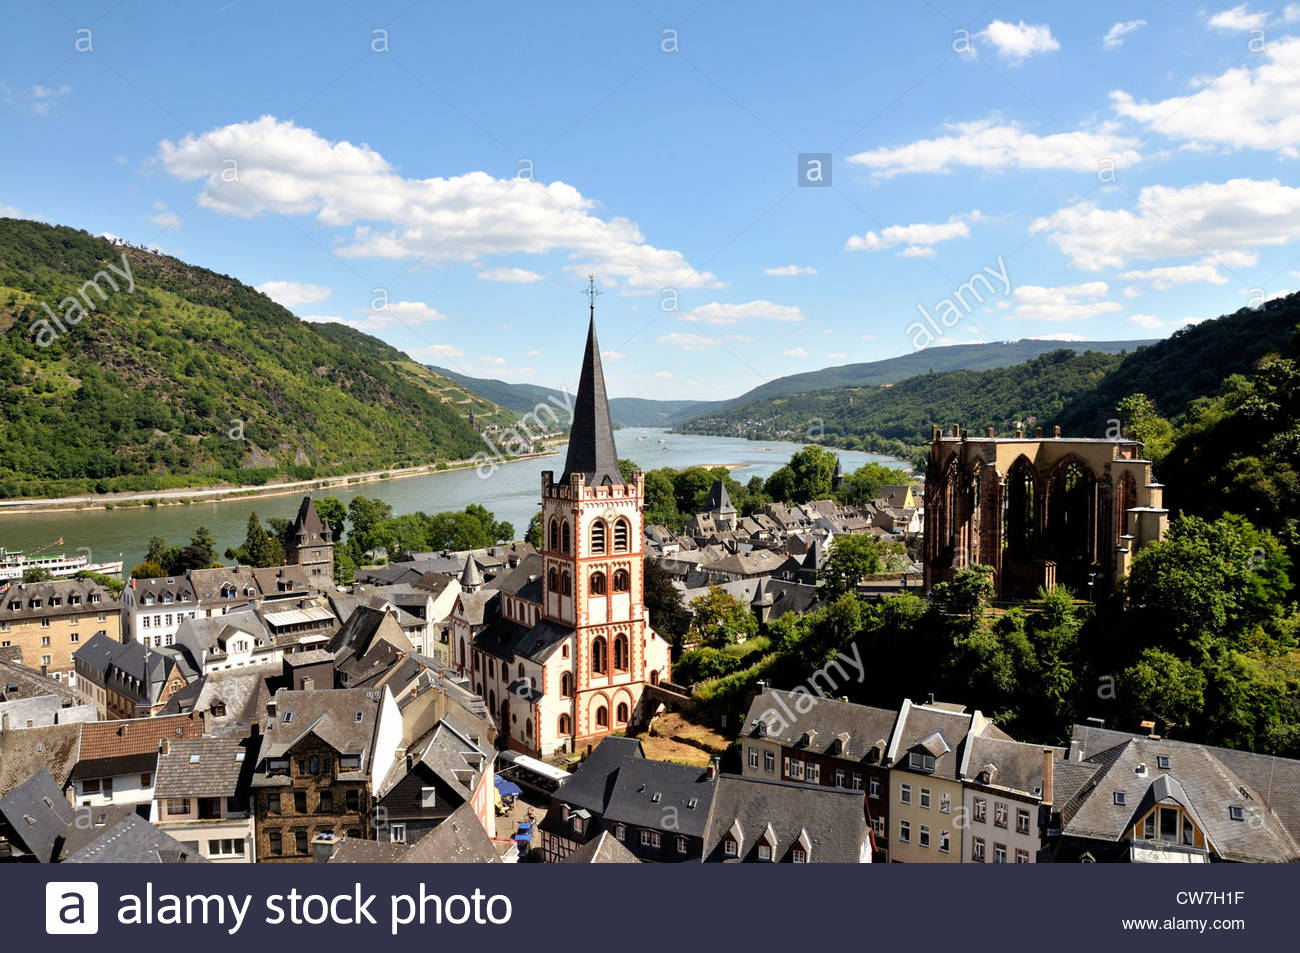 Wernerkapelle The Rhineland, view on town with Saint Peter s Church and ruin of Wernerkapelle ...